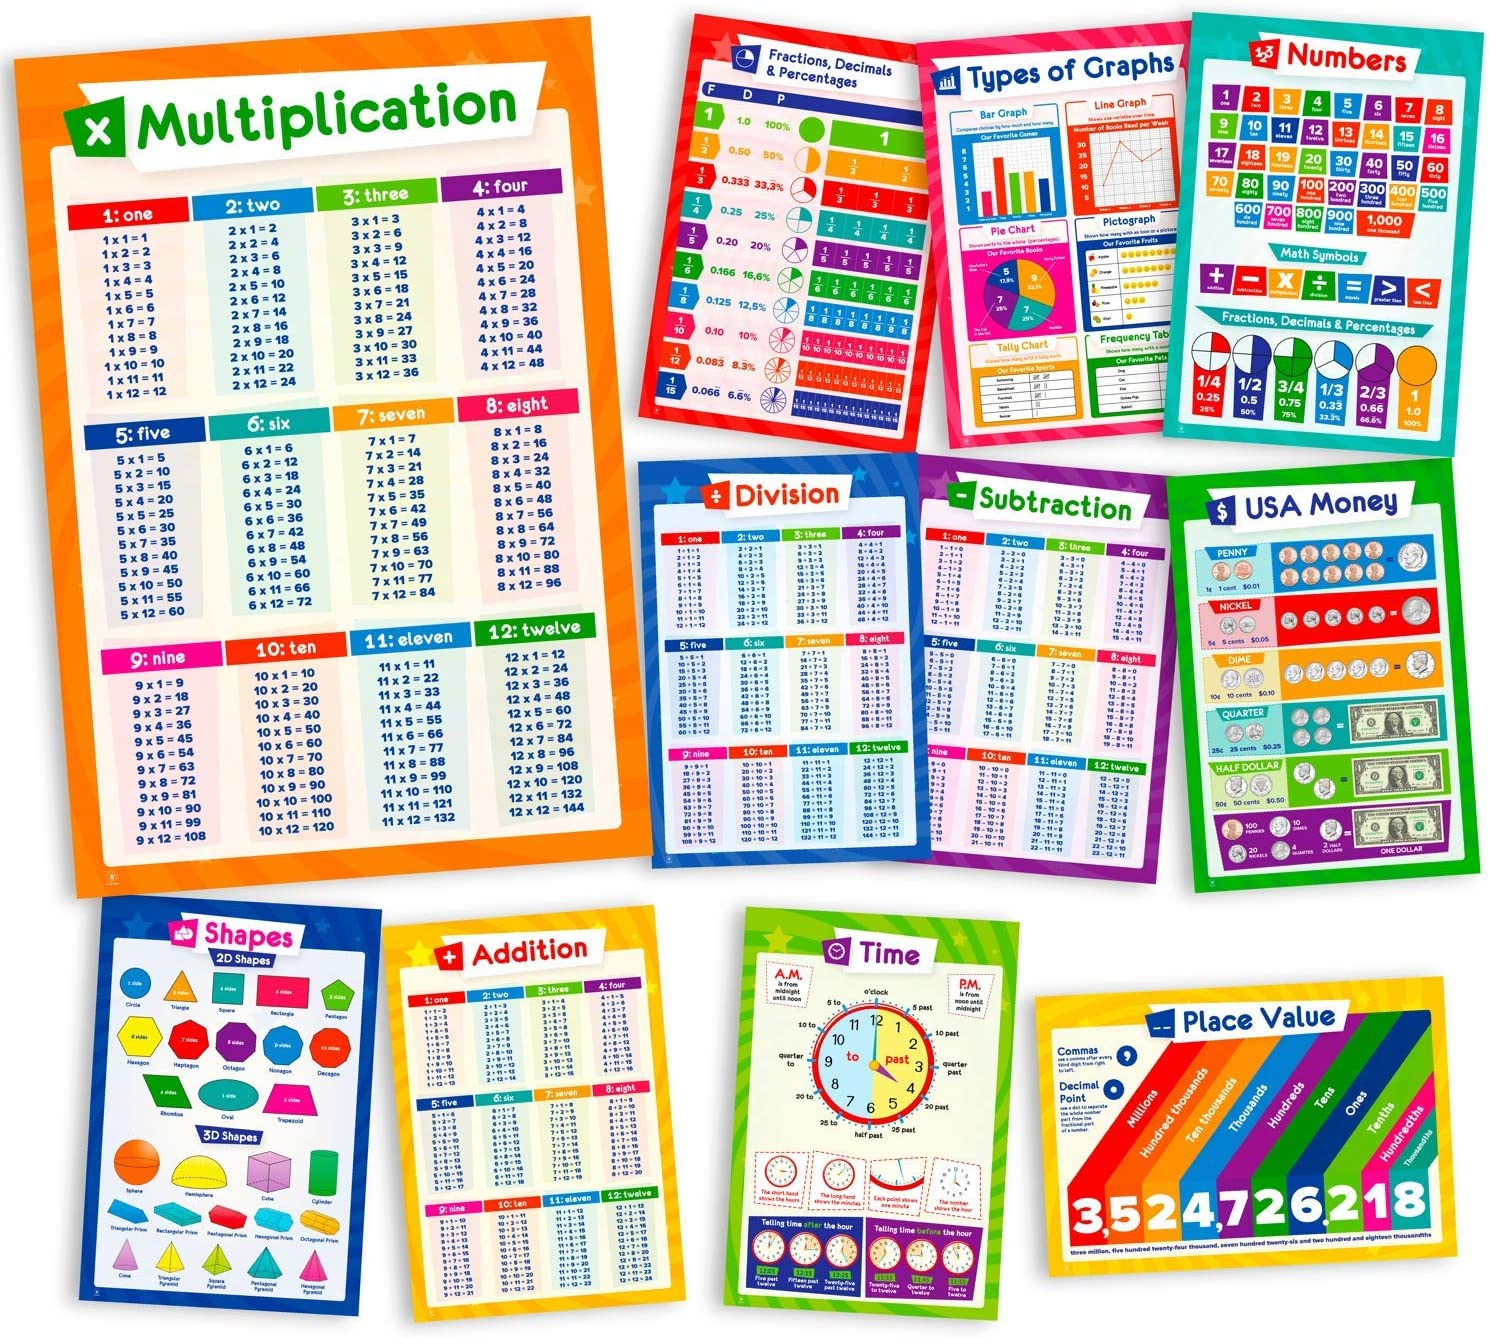 11 Educational Math Posters - Multiplication Chart Table, Place Value Chart, Money, Shapes Poster, Fractions, Division, Addition, Subtraction, Numbers, Classroom Decorations, 13x19